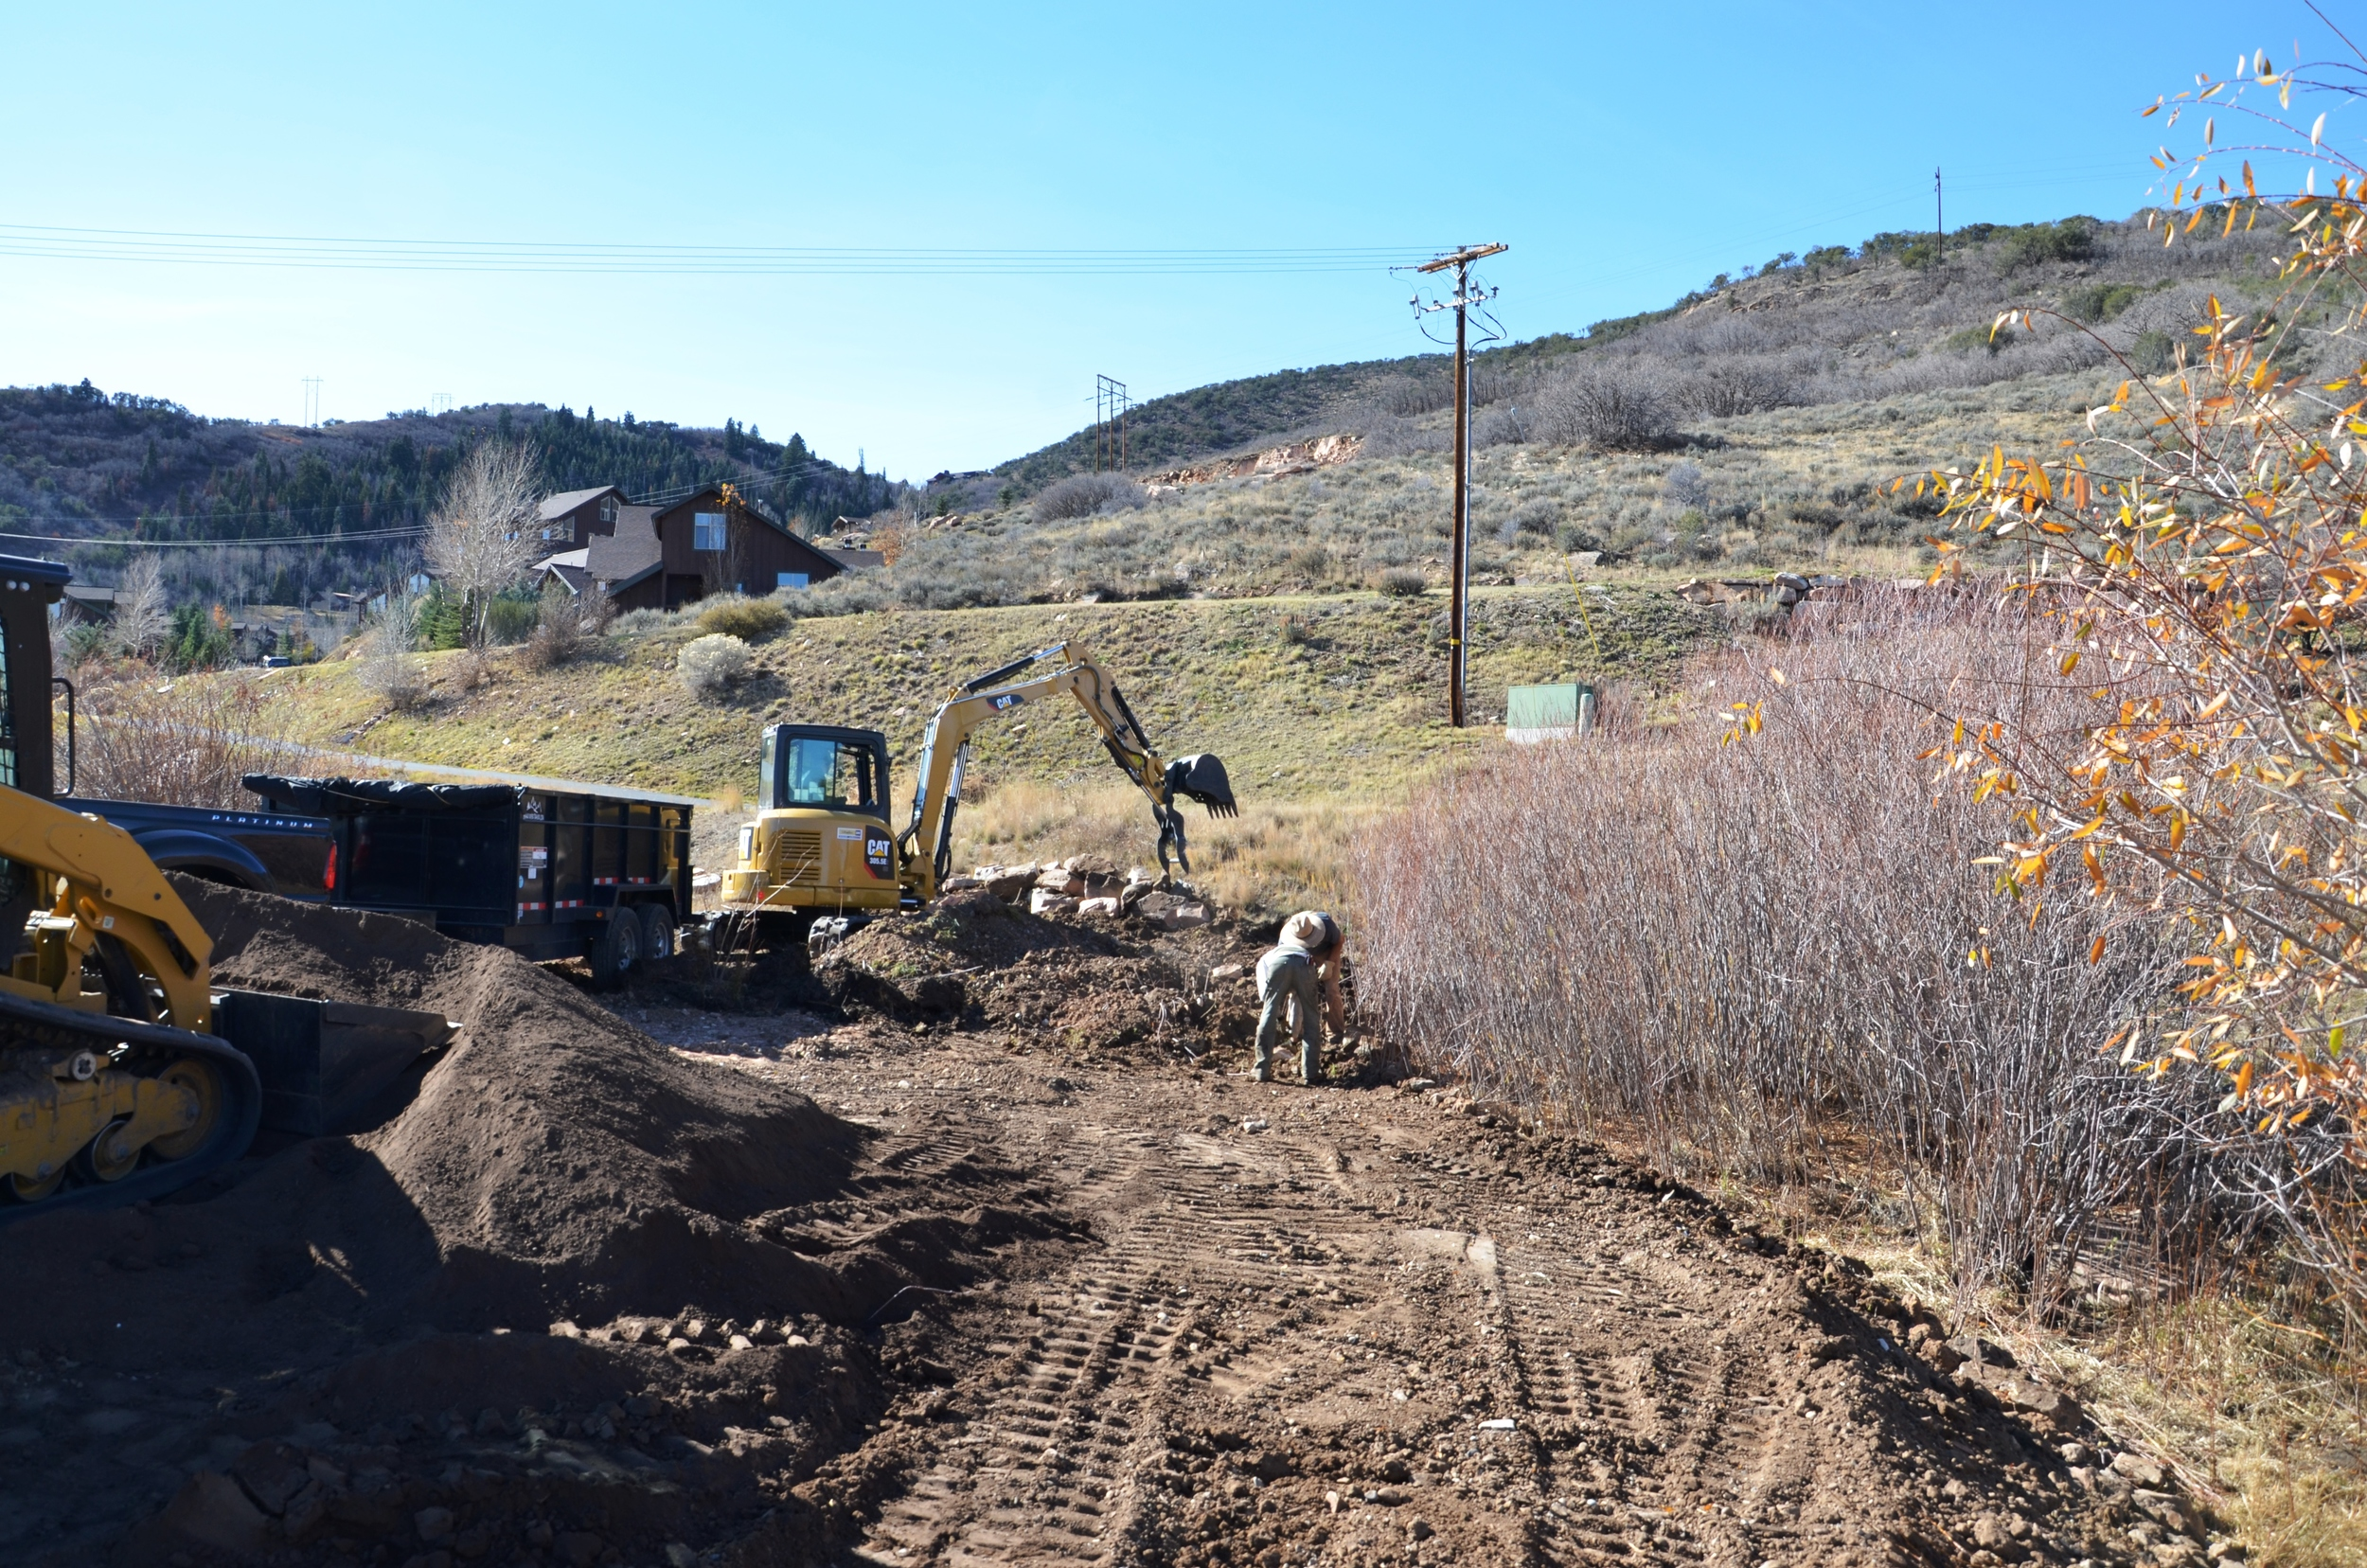 Bill, Ryan and Brian working on cleaning up and restoring beauty to the surrounding areas around the Bill White Farms.